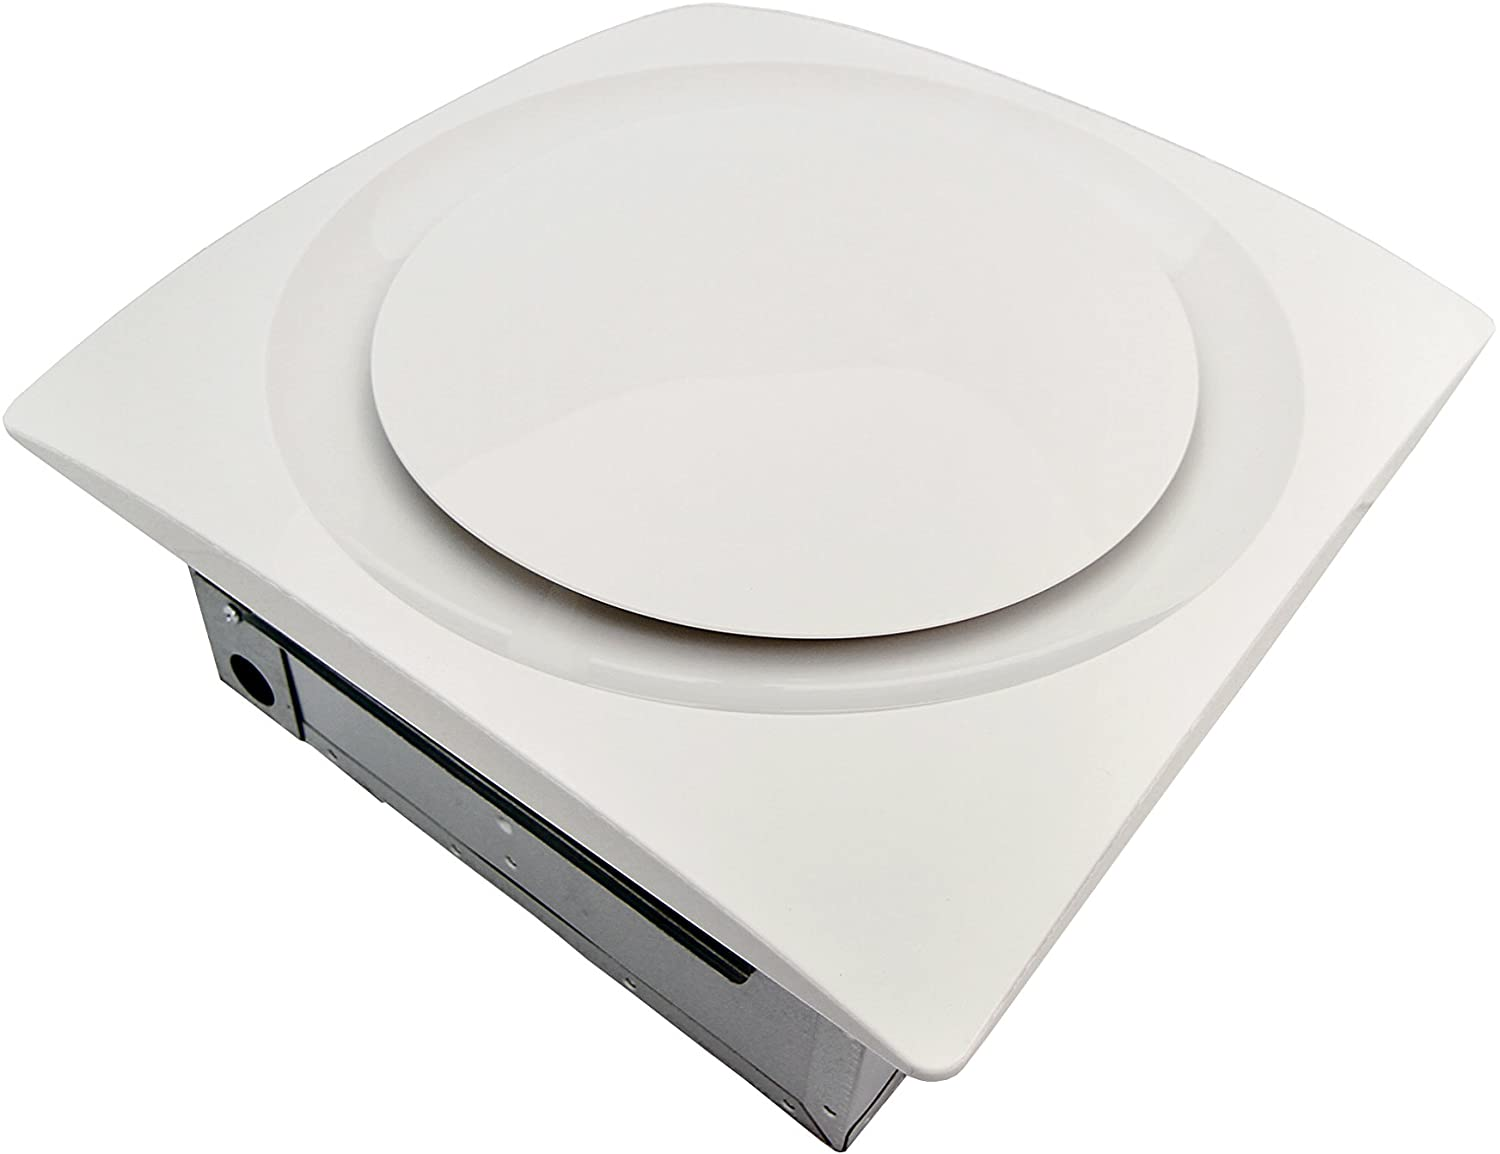 Aero Pure AP90-S G6 W Slim Fit Super Quiet 90 CFM Bathroom Ventilation Fan with White Grille